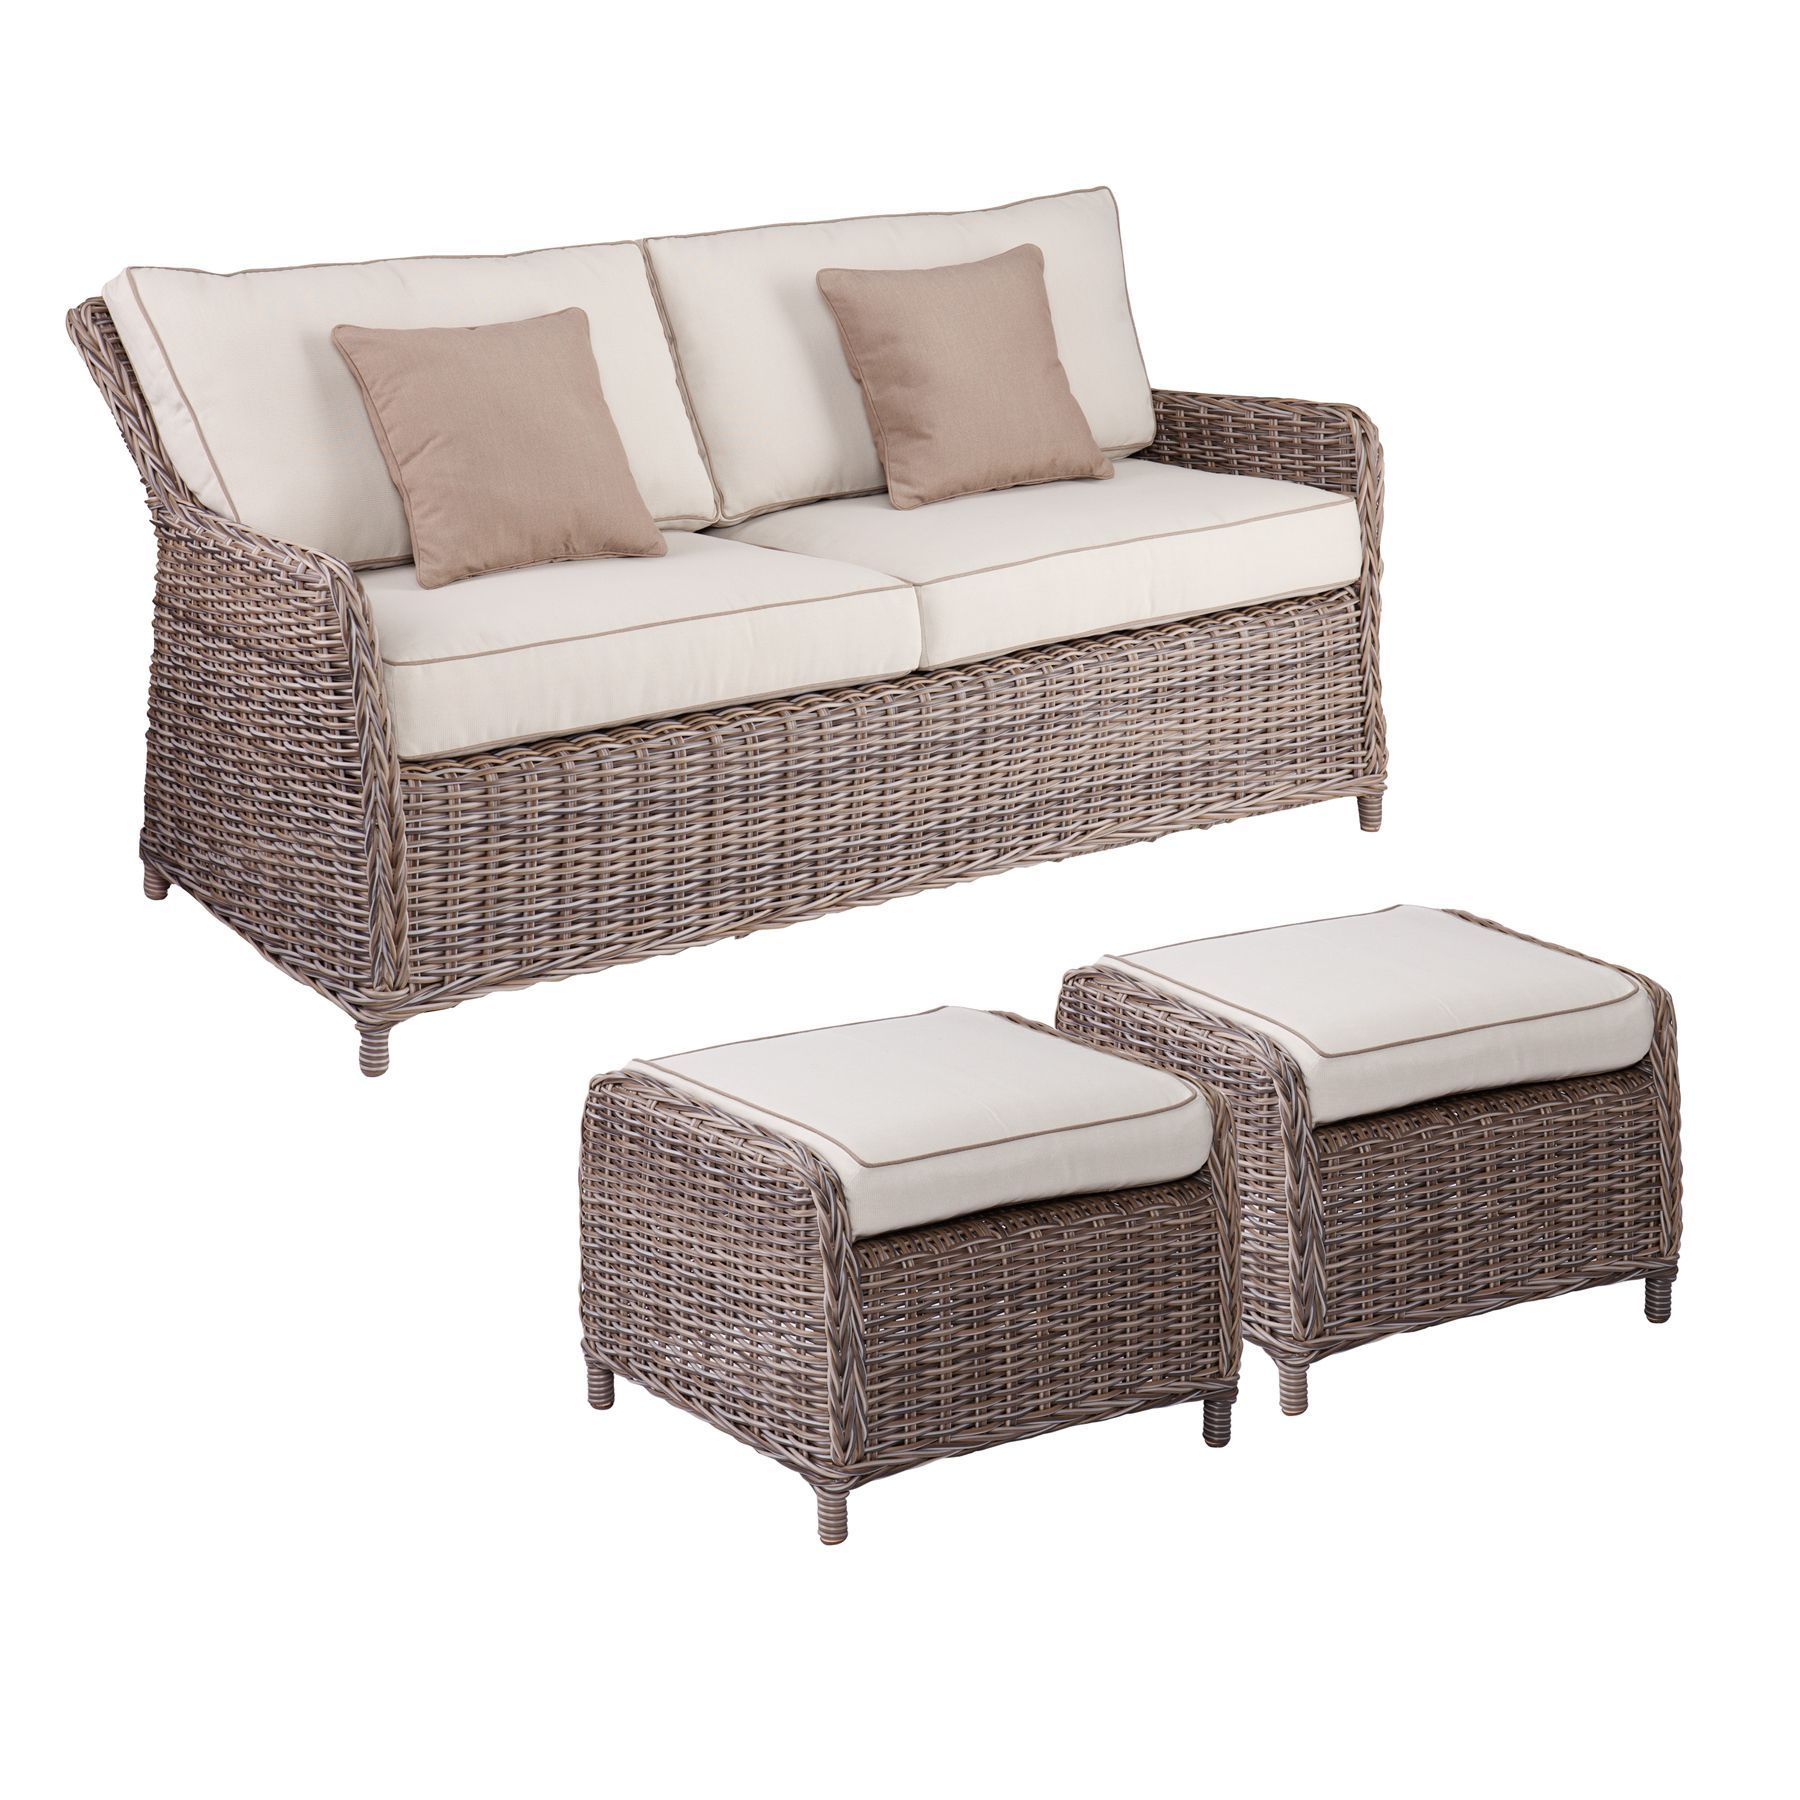 Harper Blvd Imperial Outdoor 2 5 Seater Sofa and Ottoman 3pc Set